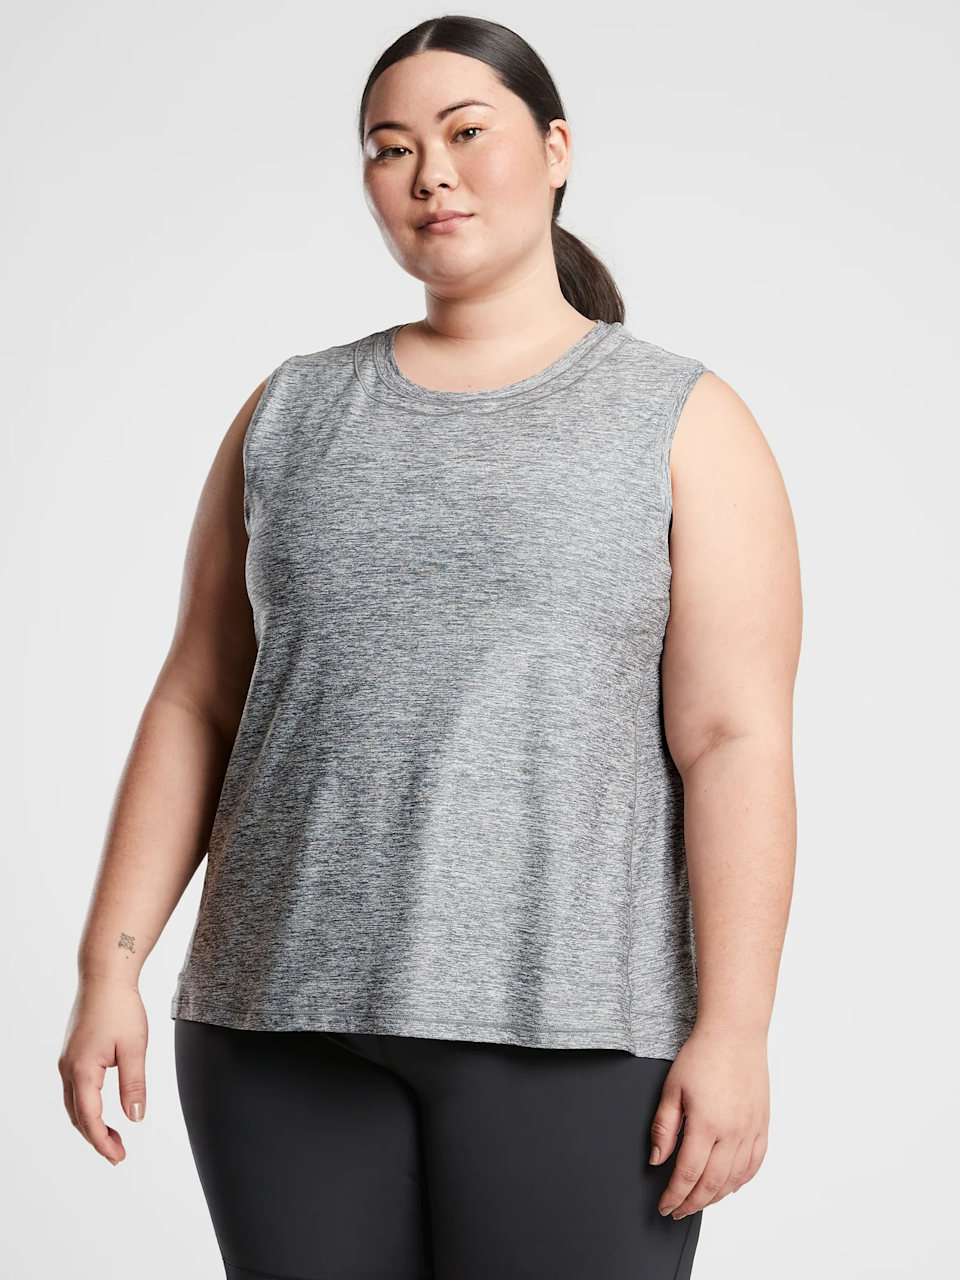 """<p><strong>Athleta</strong></p><p>athleta.gap.com</p><p><strong>$54.00</strong></p><p><a href=""""https://go.redirectingat.com?id=74968X1596630&url=https%3A%2F%2Fathleta.gap.com%2Fbrowse%2Fproduct.do%3Fpid%3D657815012%26cid%3D1170454%26pcid%3D46752%26vid%3D1%26grid%3Dpds_5_96_1%23pdp-page-content&sref=https%3A%2F%2Fwww.prevention.com%2Fbeauty%2Fstyle%2Fg36320853%2Fbest-sun-protective-clothing%2F"""" rel=""""nofollow noopener"""" target=""""_blank"""" data-ylk=""""slk:Shop Now"""" class=""""link rapid-noclick-resp"""">Shop Now</a></p><p>With <strong>UPF 50+ sun protection</strong>, this easygoing tank from Athleta is way more effective than it appears, meaning you won't stand out too much on your next run or trip to the brewery.</p>"""